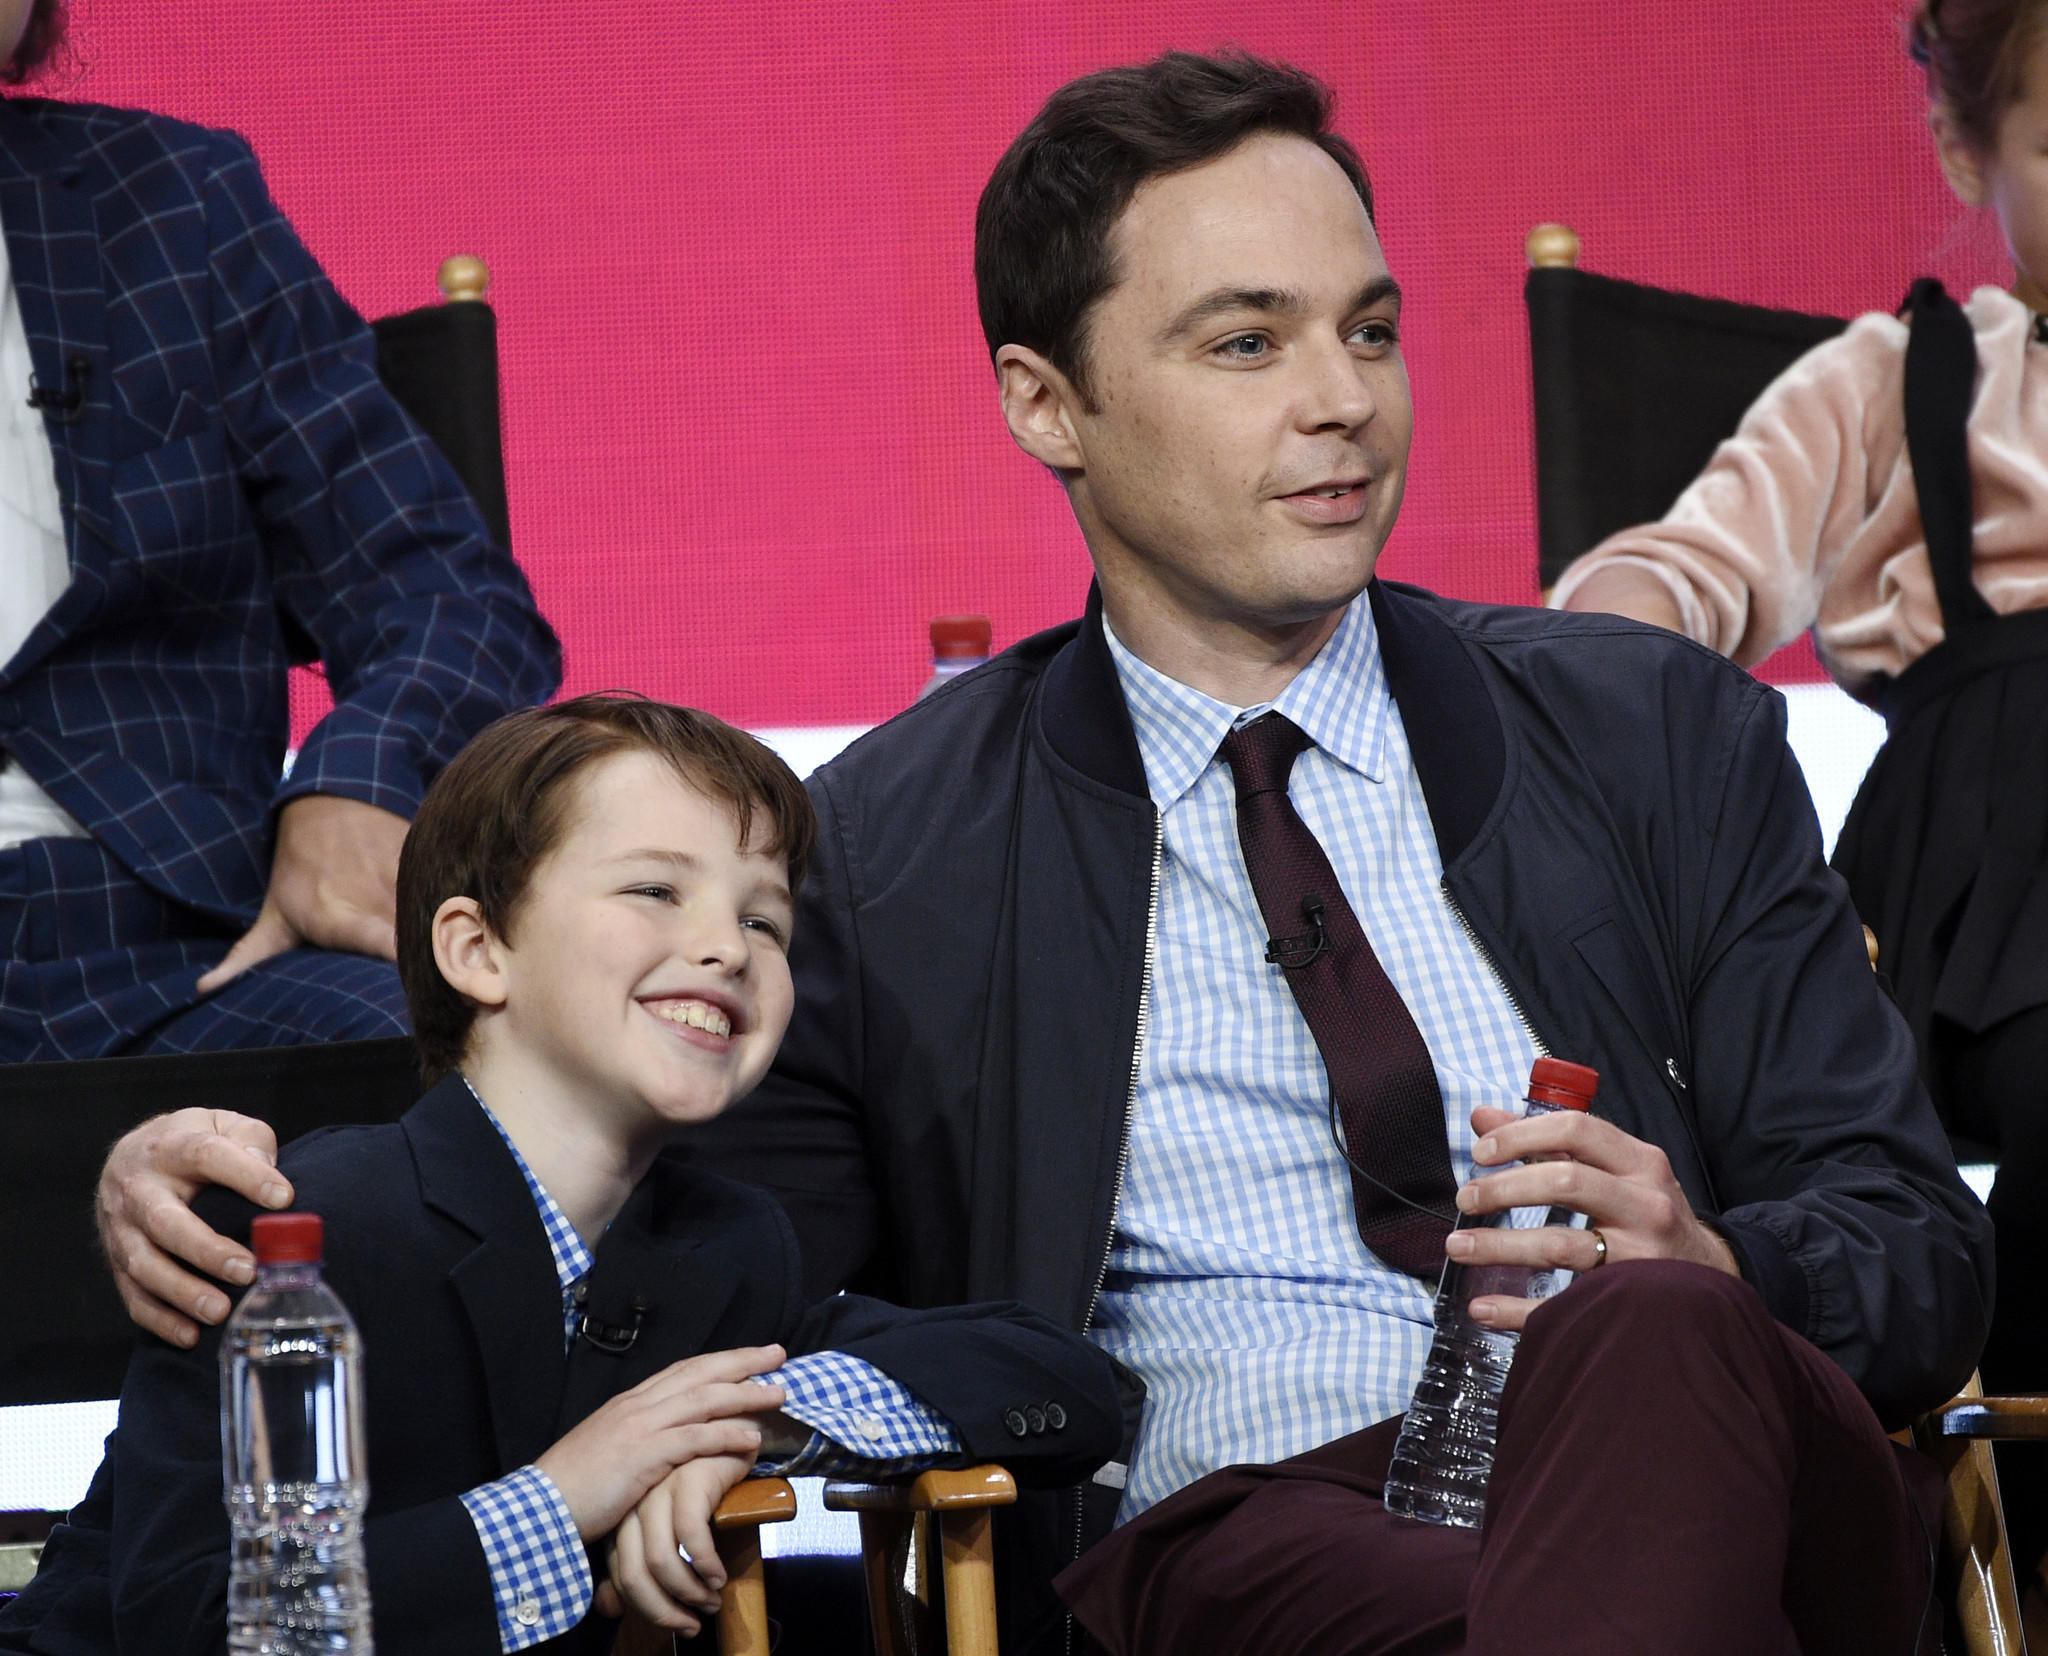 Two Sheldons: Iain Armitage and Jim Parsons (Chris Pizzello / Invision/Associated Press)